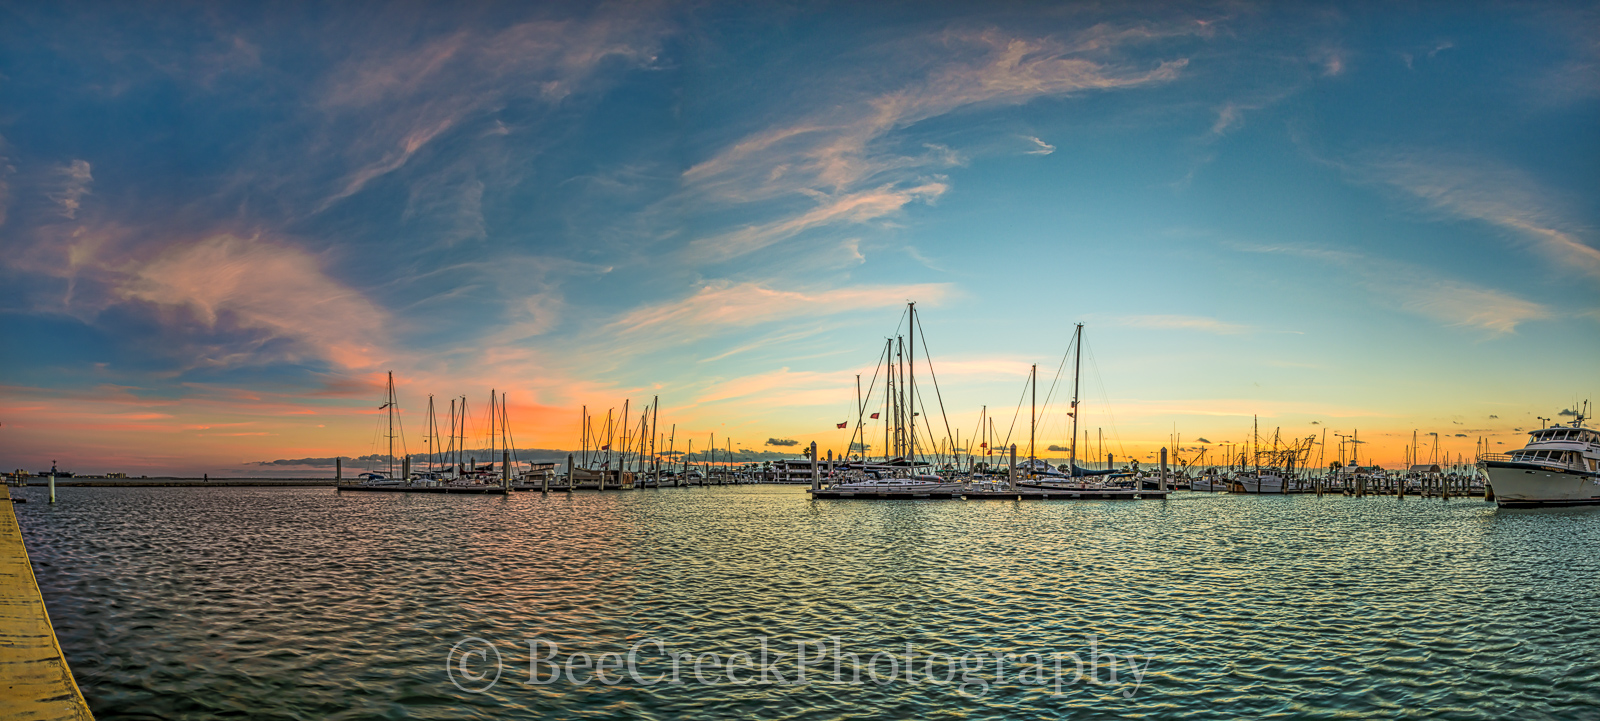 Corpus Christi, Sunrise, Texas Coast, bay, blue, boats, coastal, gulf, marina, ocean, oranges, pano, panorama, pinks, sailboats, sea, sea wall, seascape, seascapes, seashore, texas seashore, whispy cl, photo